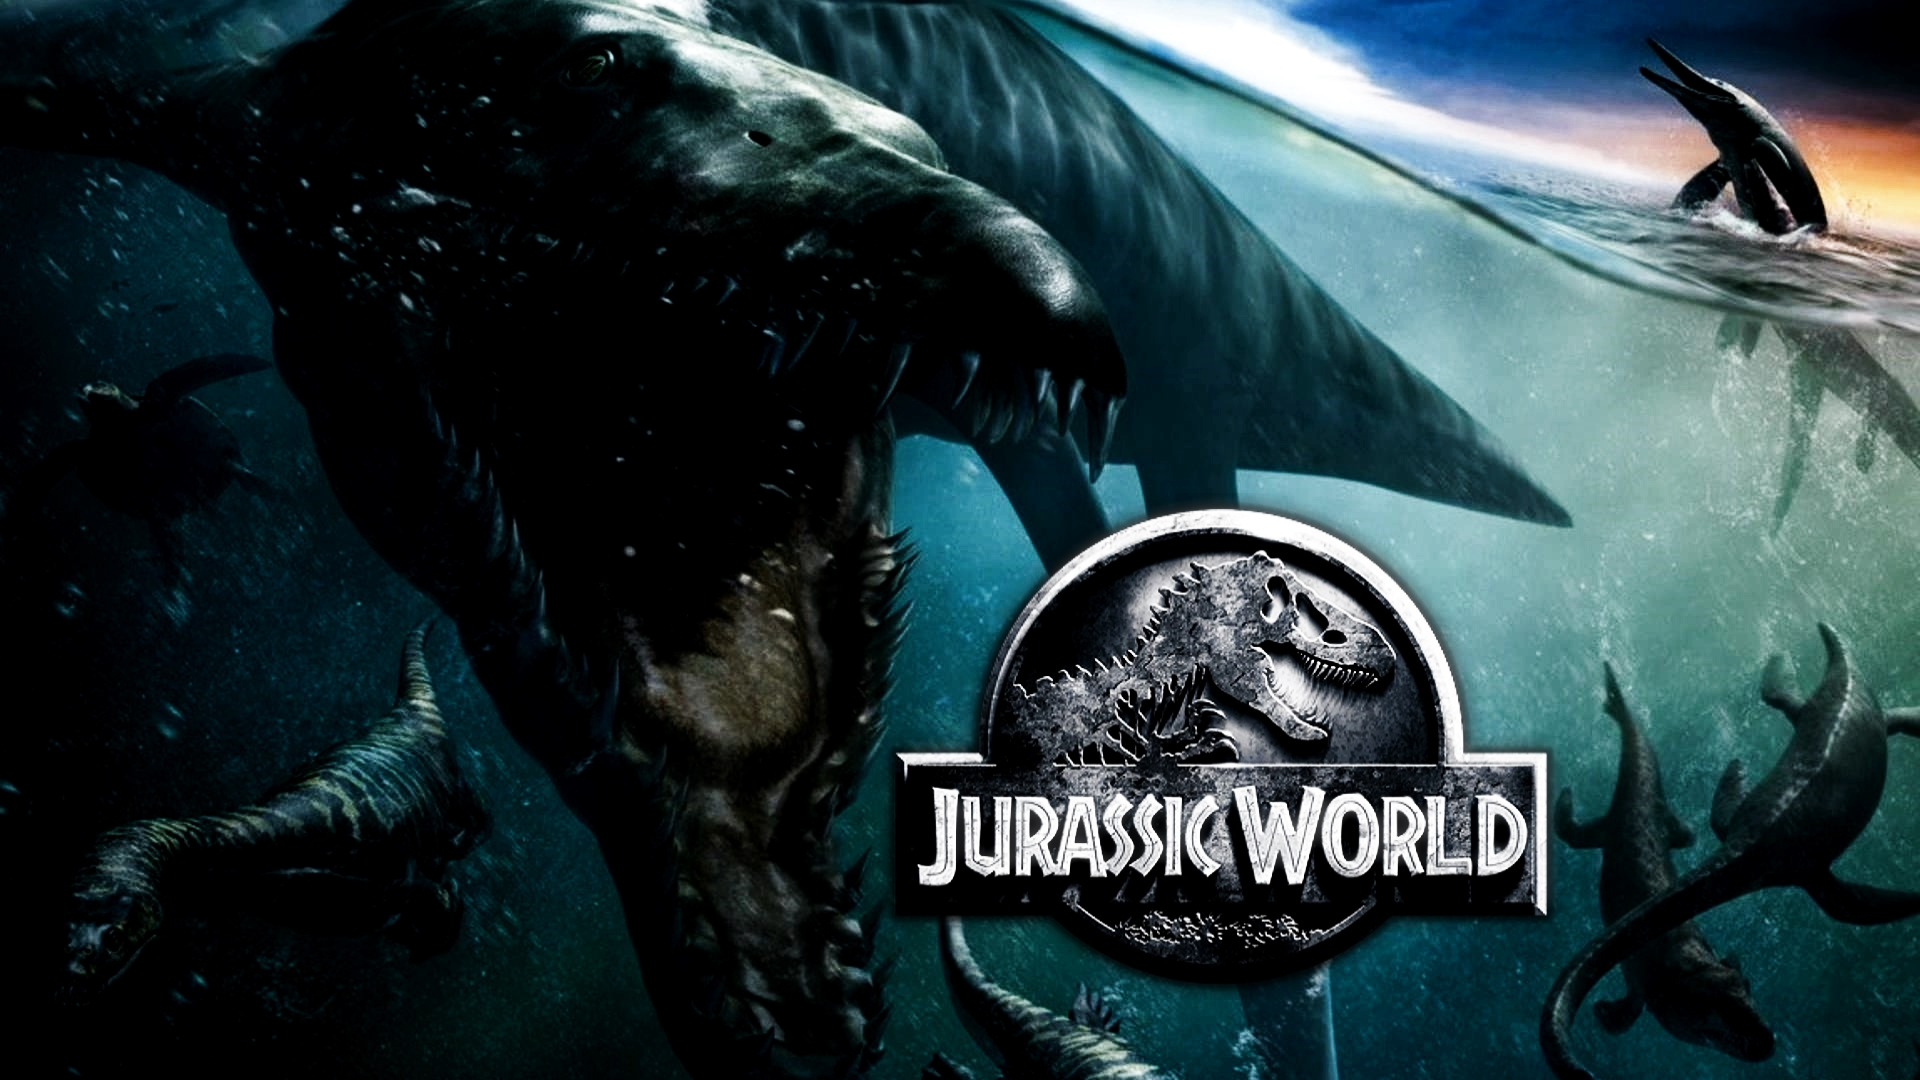 Jurassic World Wallpapers High Quality Download Free